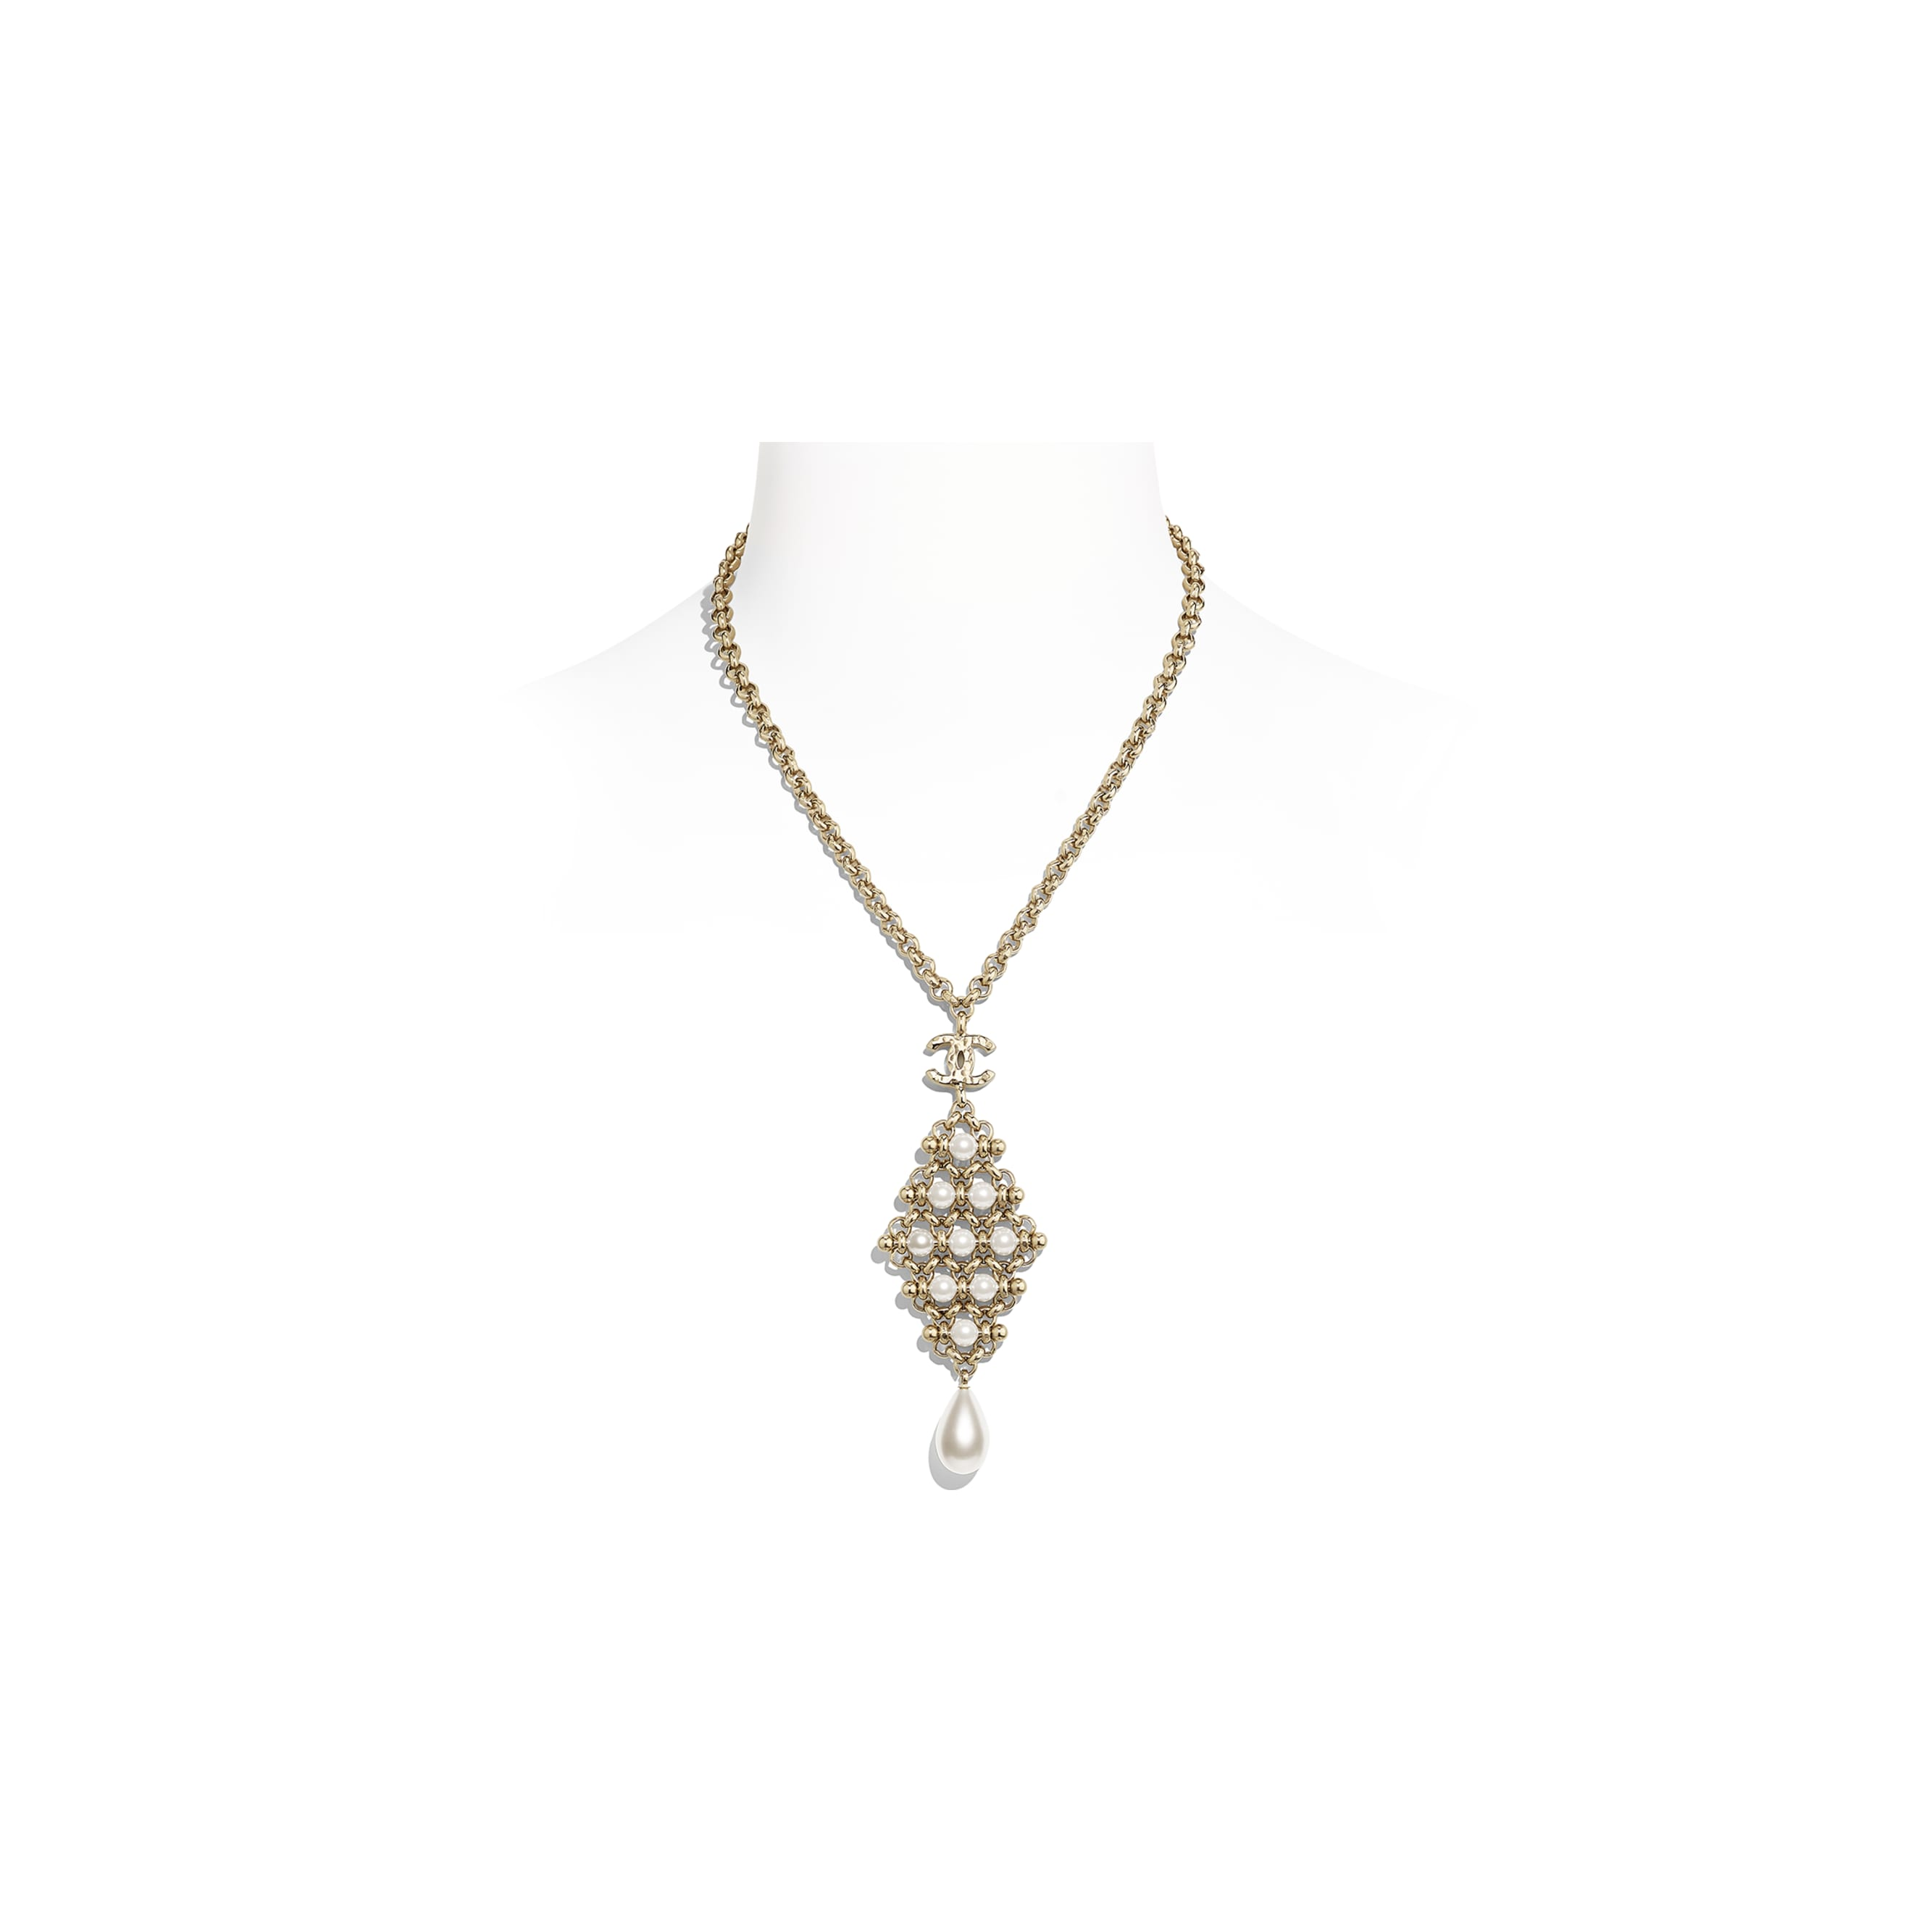 Necklace - Gold & Pearly White - Metal & Imitation Pearls - CHANEL - Default view - see standard sized version